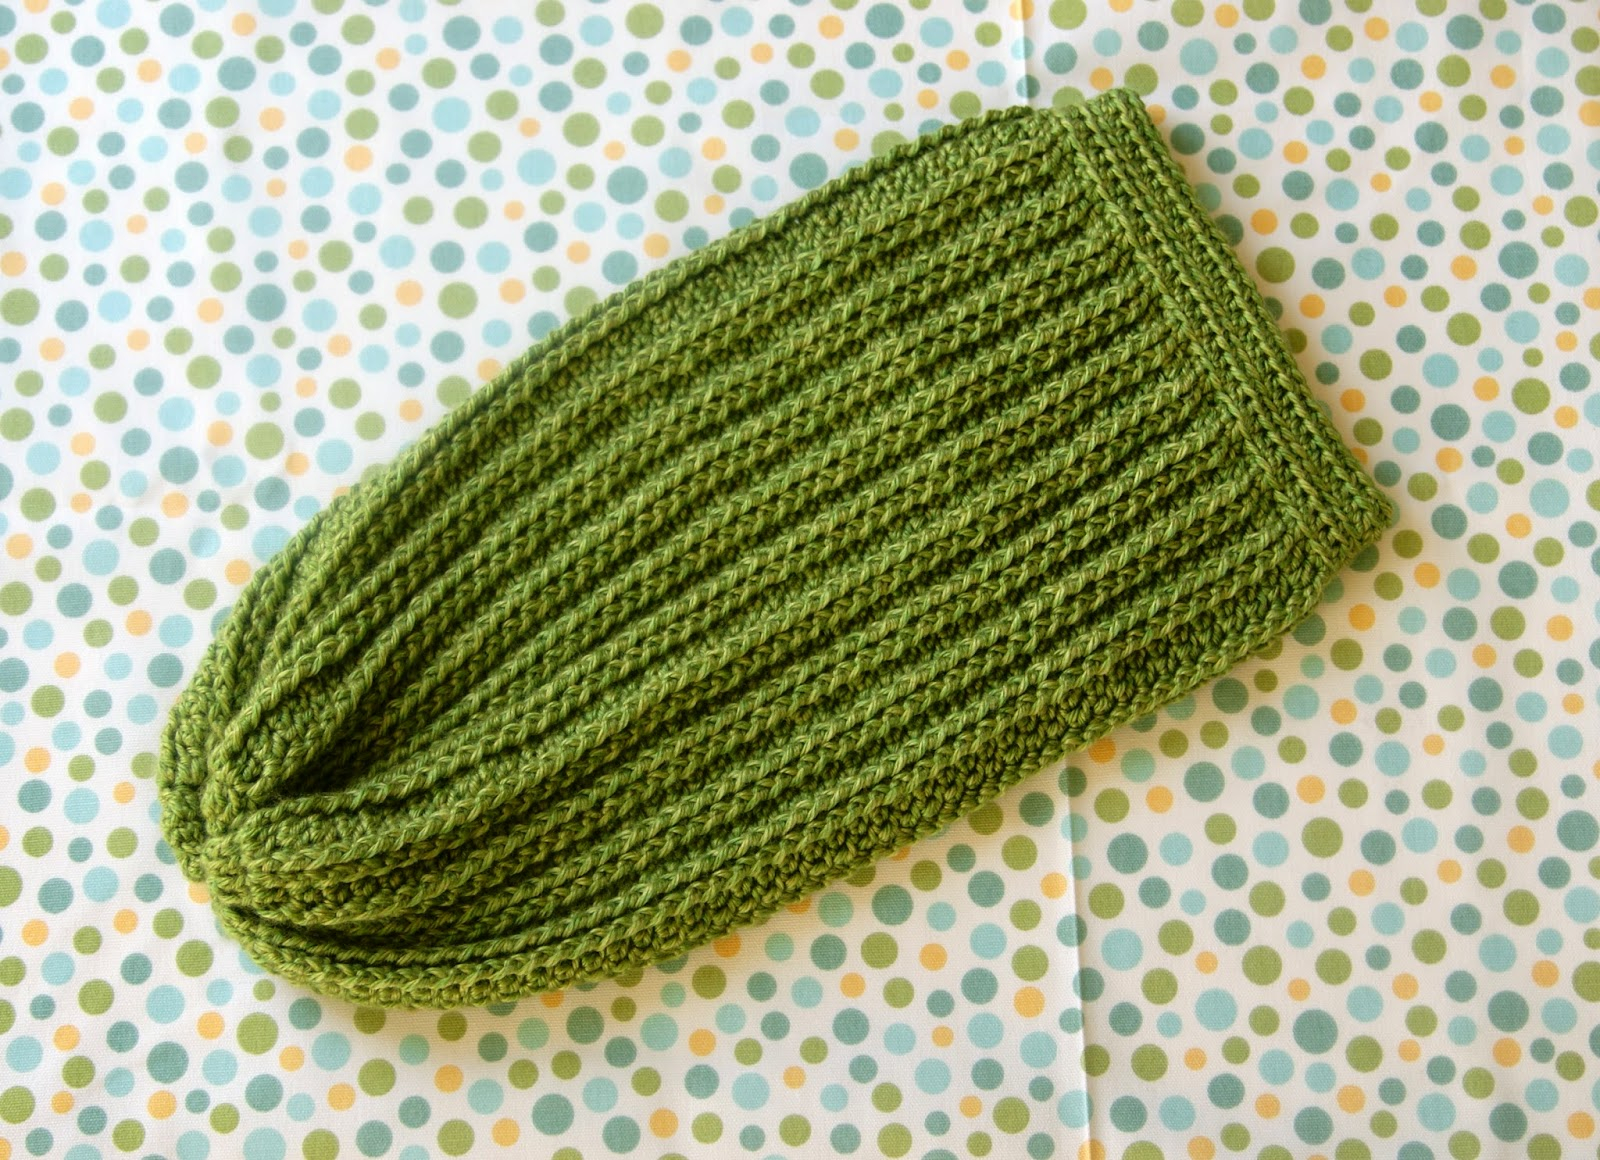 Crochet Cocoon Patterns For Newborns Alice And The Mock Turtle Free Crochet Pattern Ba Cocoon With